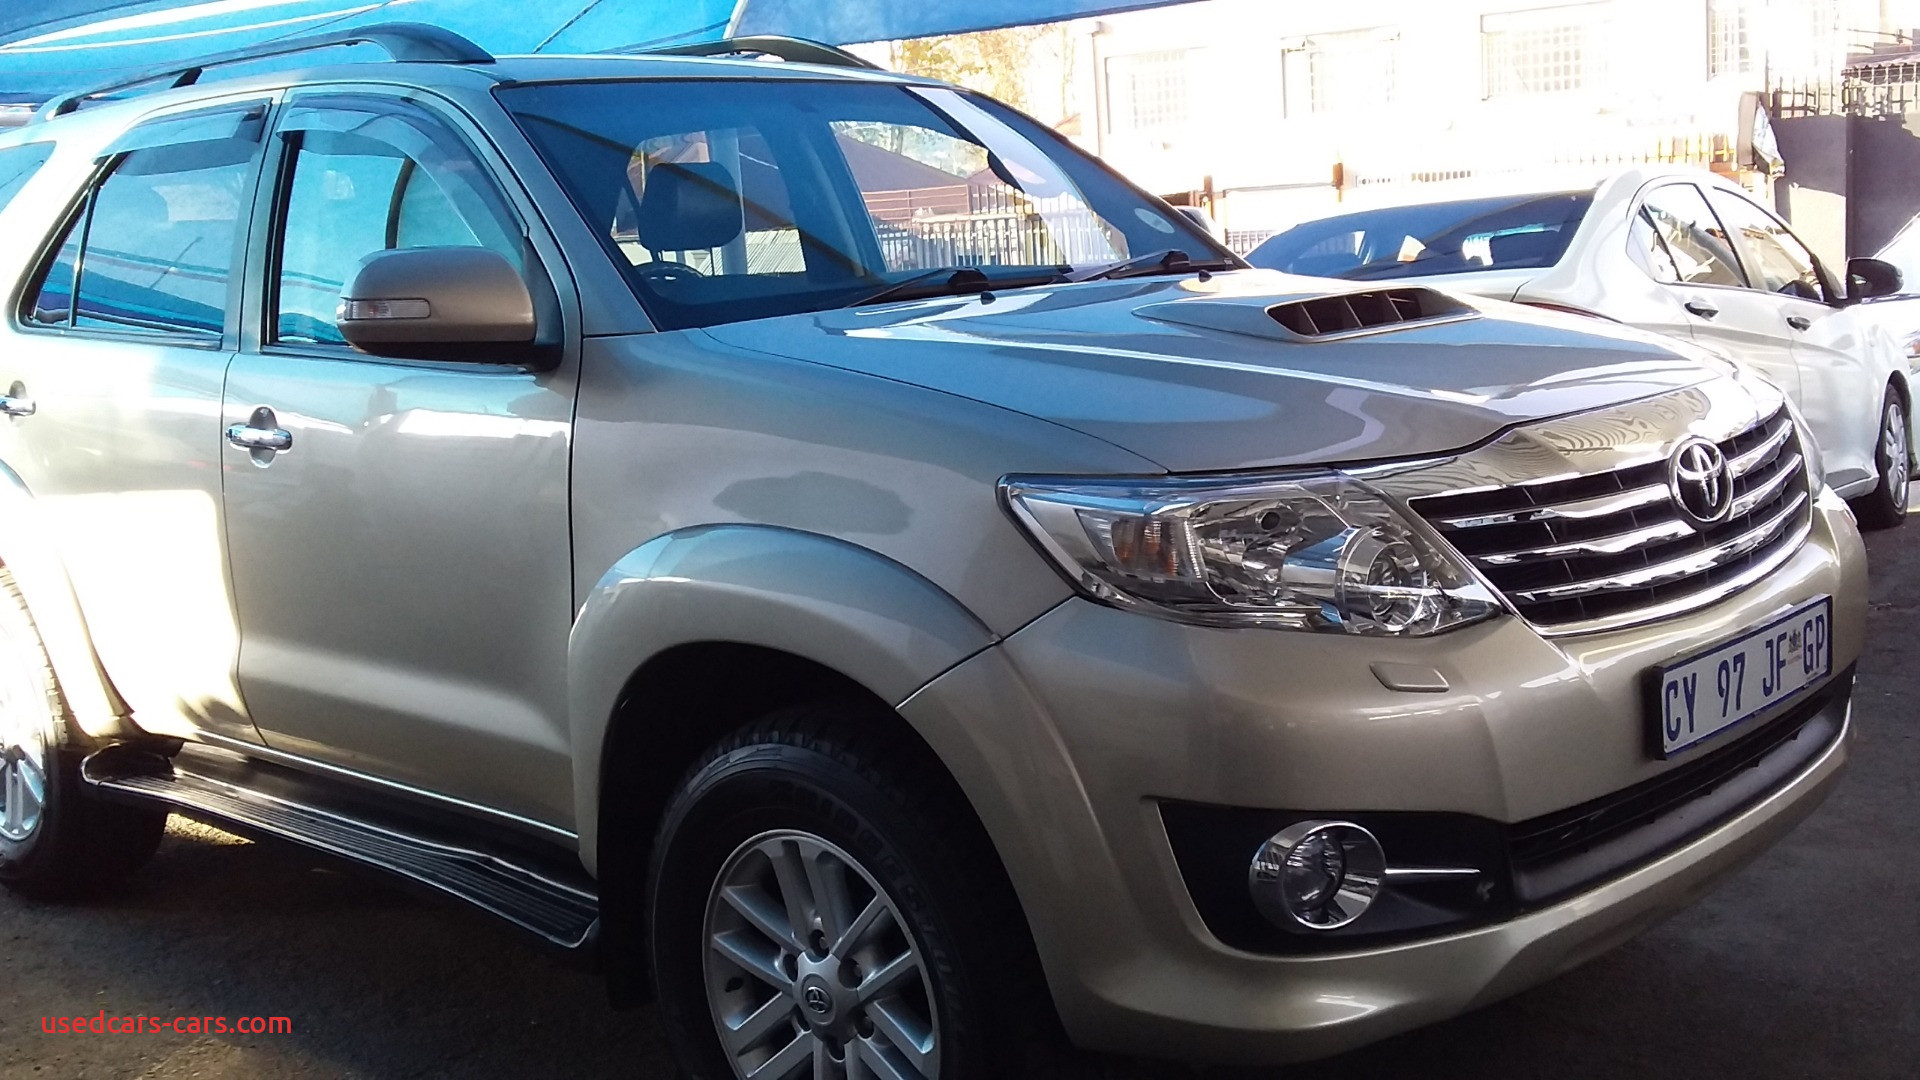 Used Cars Near Me Under $5000 Fresh toyota fortuner 3 0d 4d Auto for Sale In Gauteng